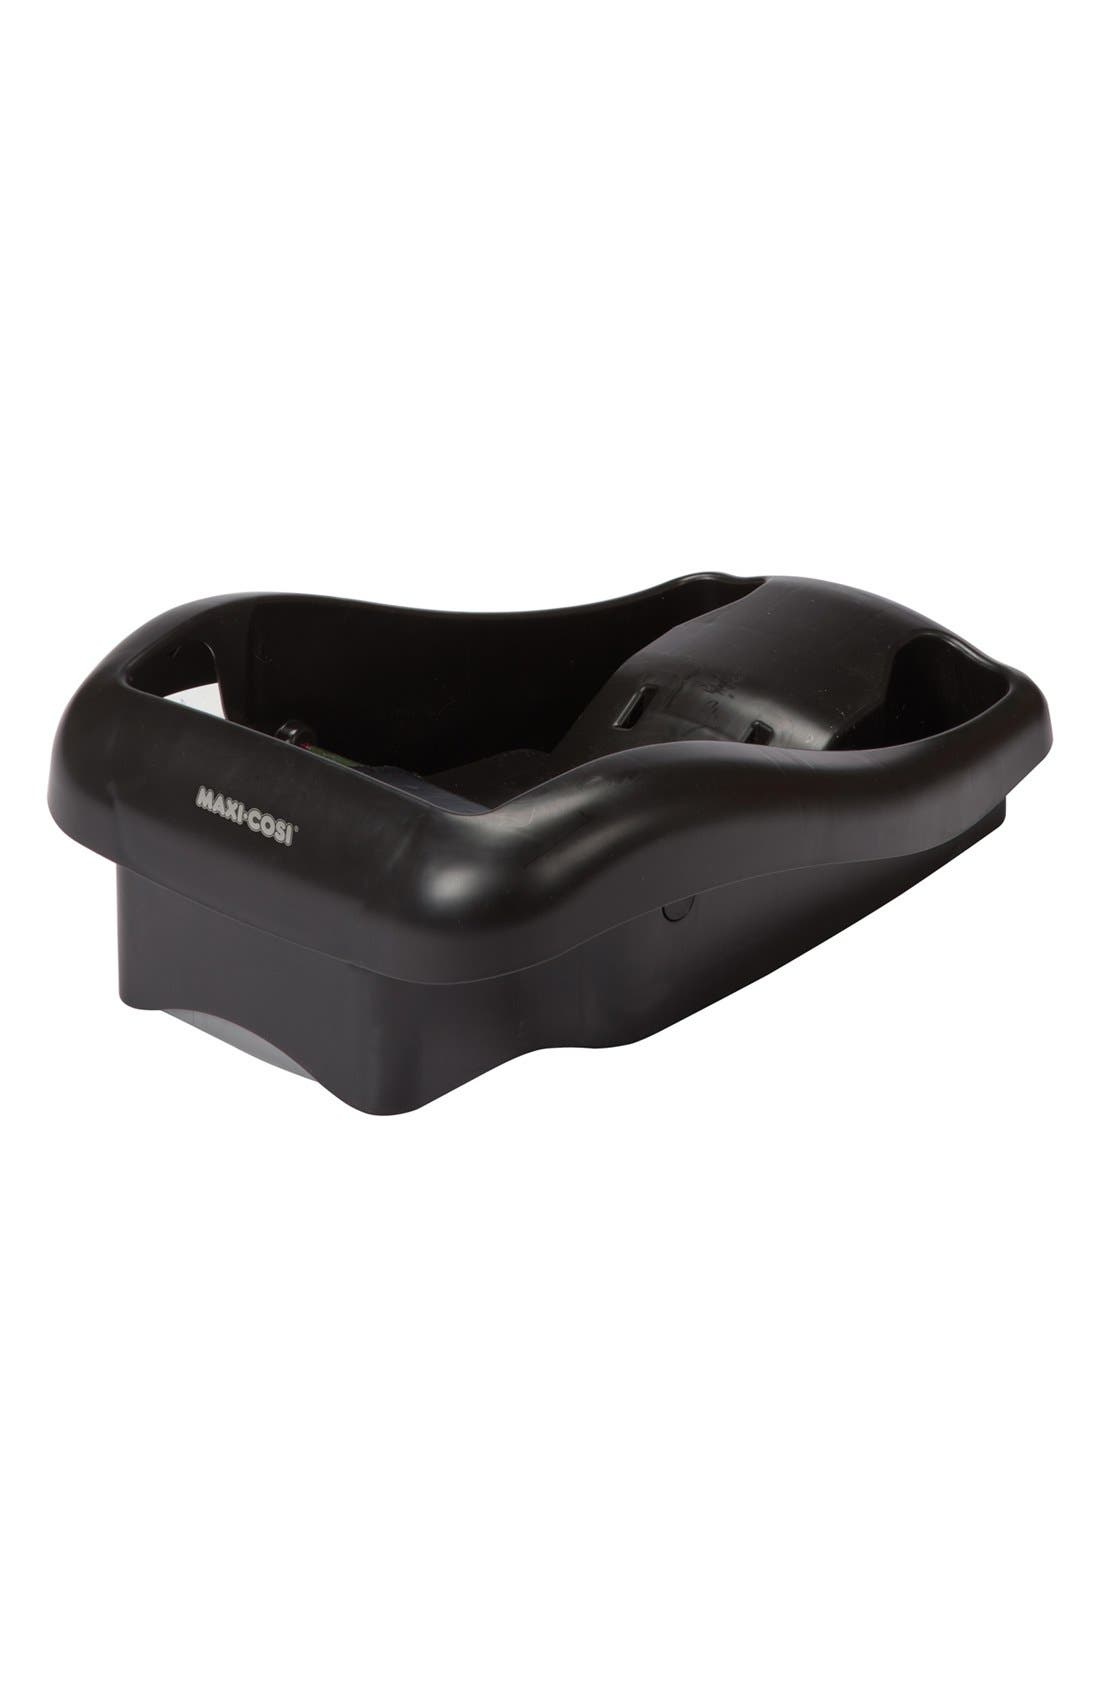 Alternate Image 1 Selected - Maxi-Cosi® 'Mico AP' Infant Car Seat Base